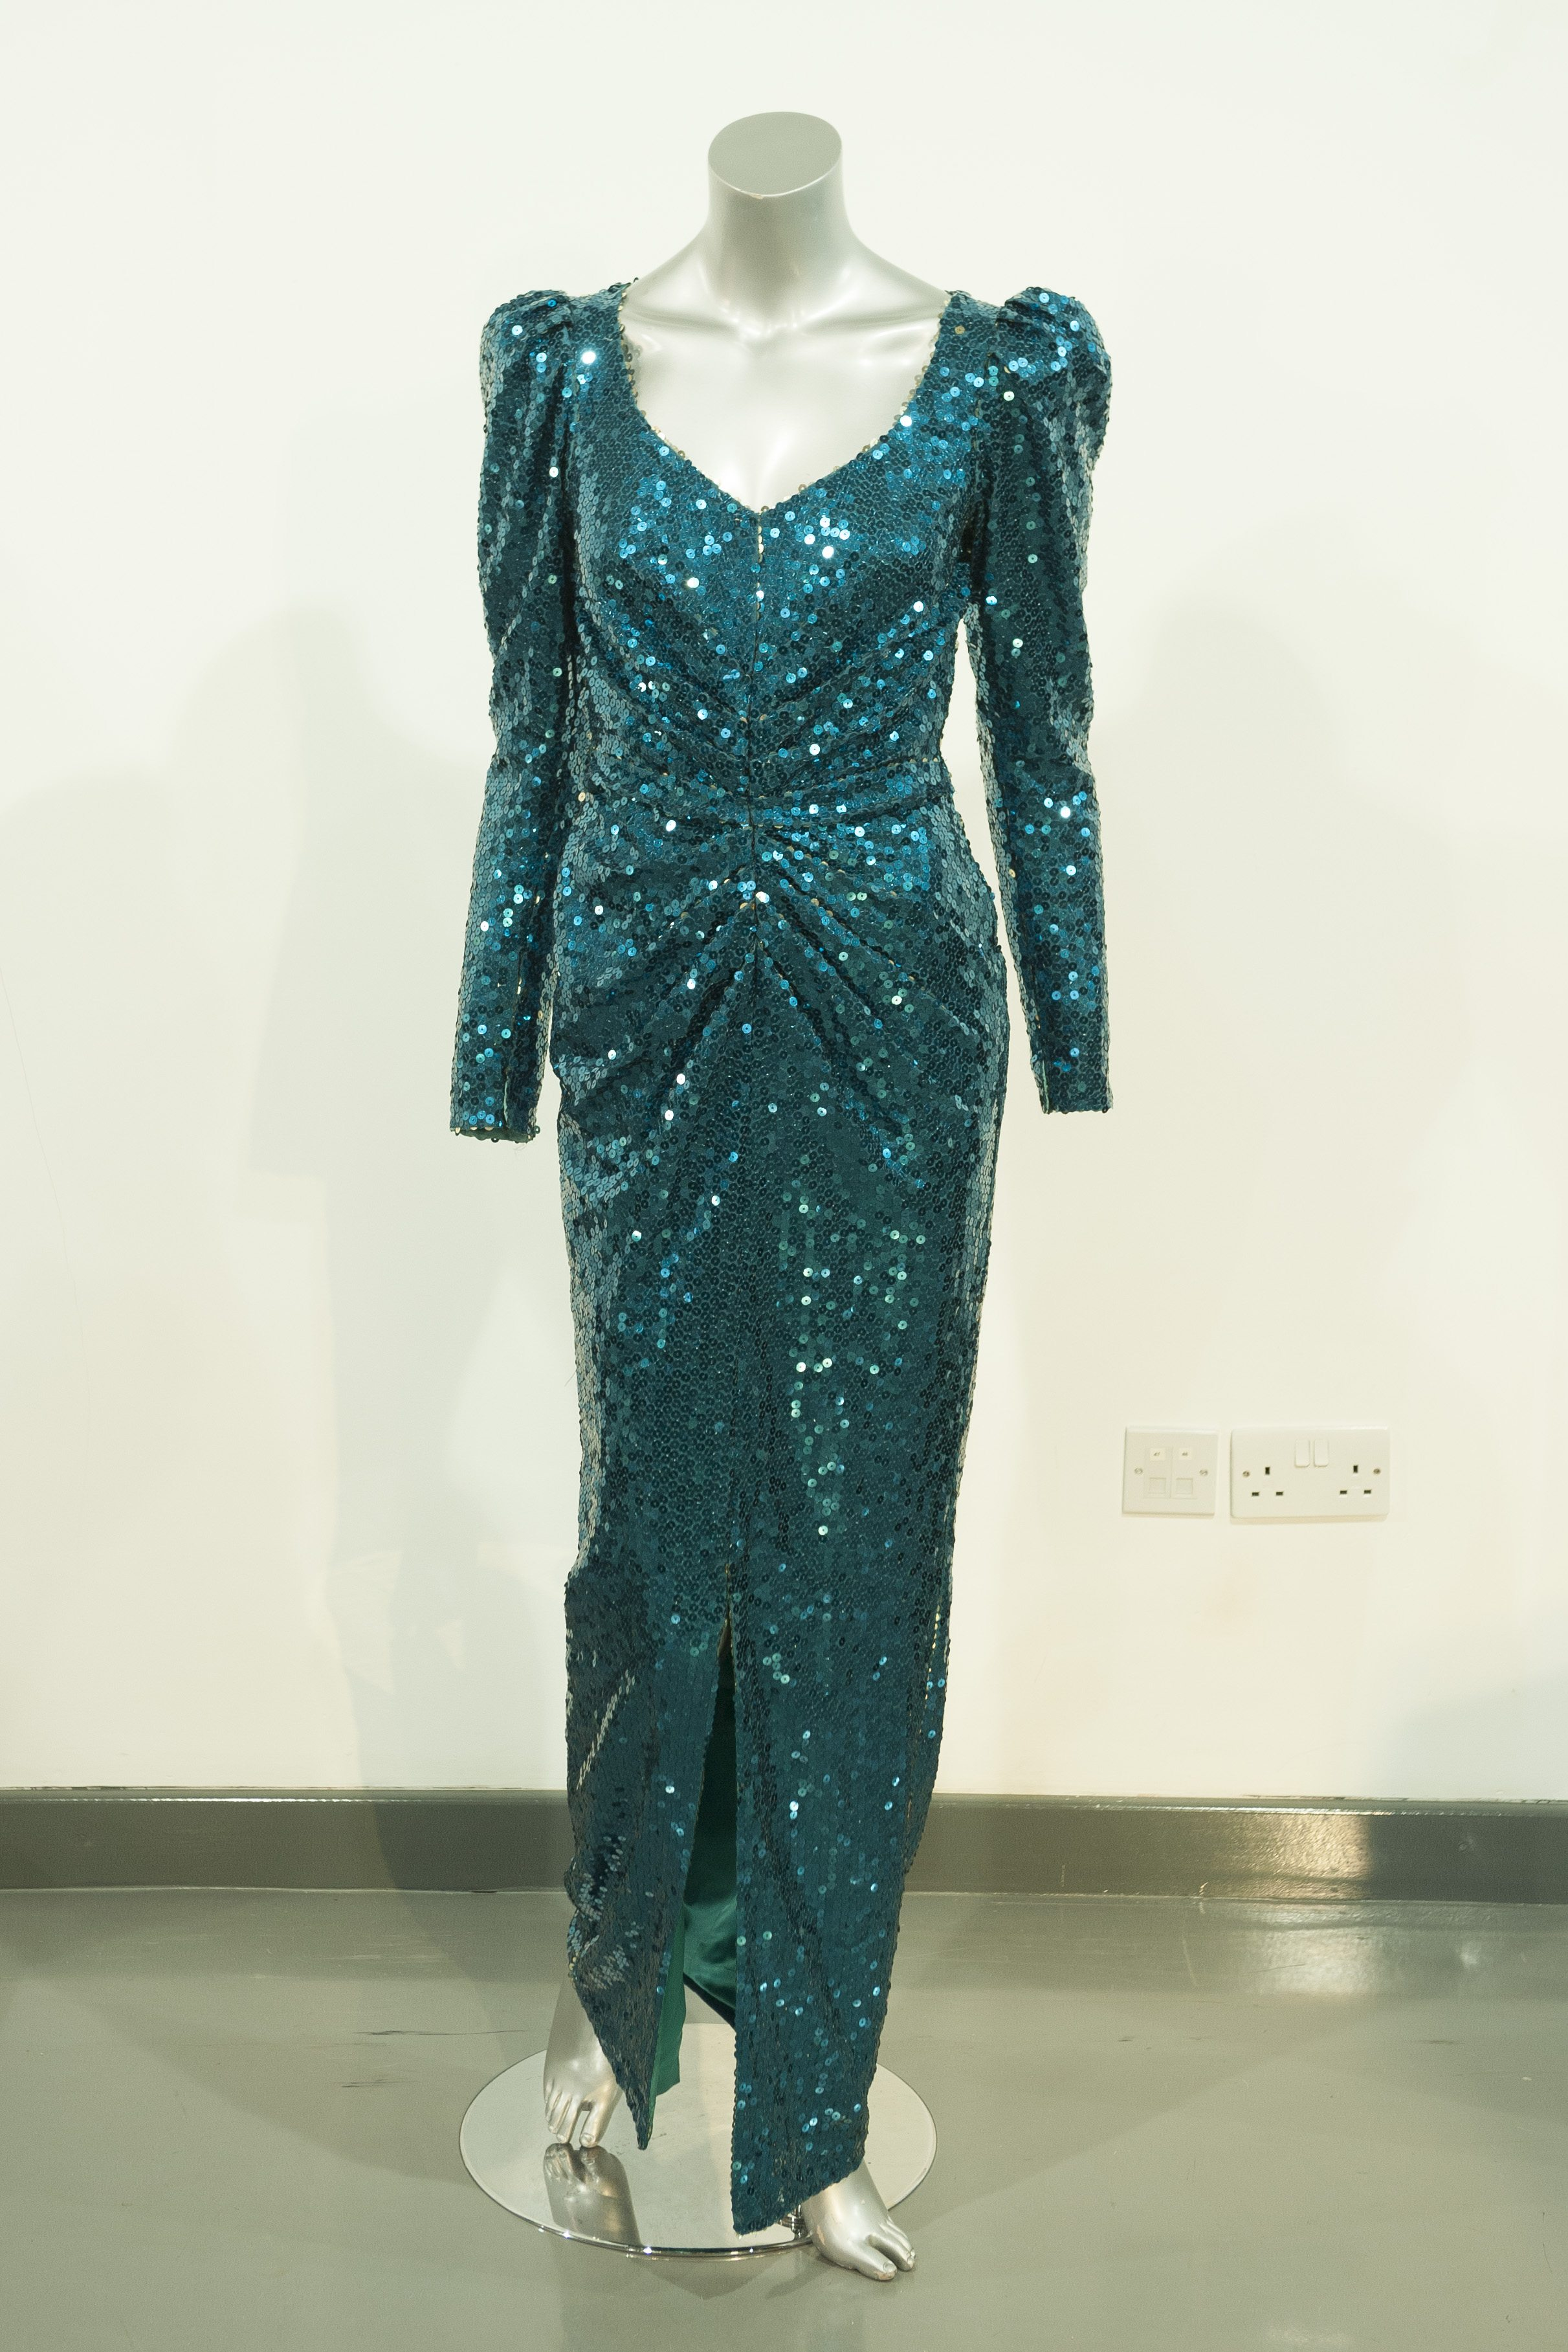 Catherine Walker Sea Green Evening Gown worn for a State visit to Austria in 1989